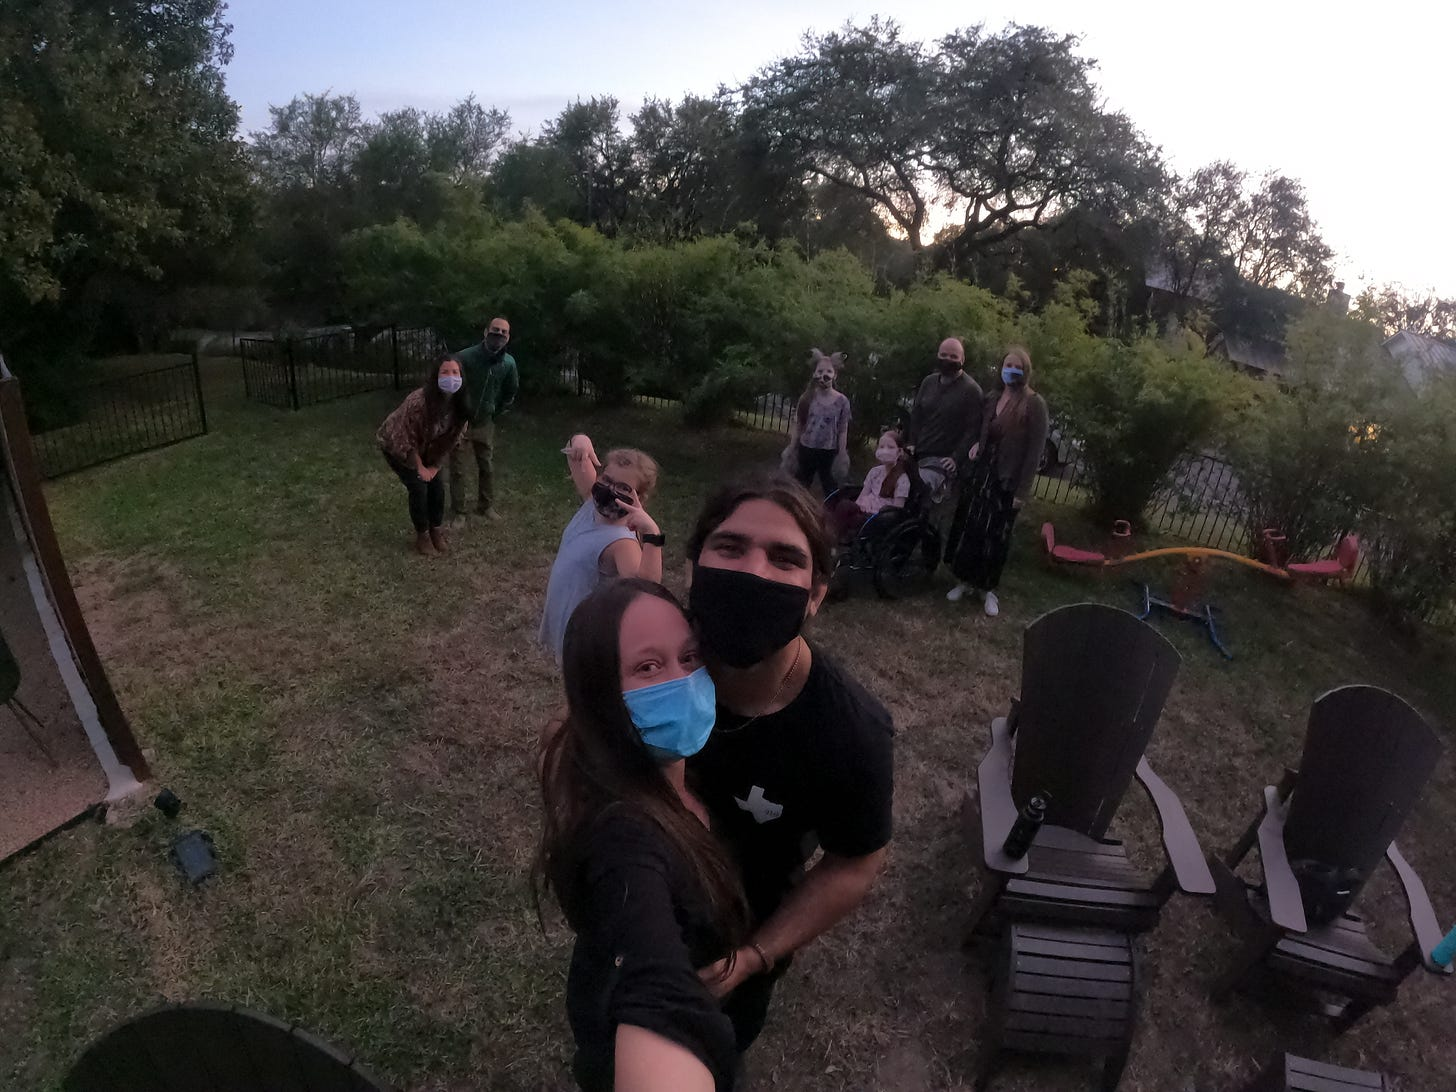 Anthony and Kelly stand and selfie with the backyard audience everyone is wearing masks!